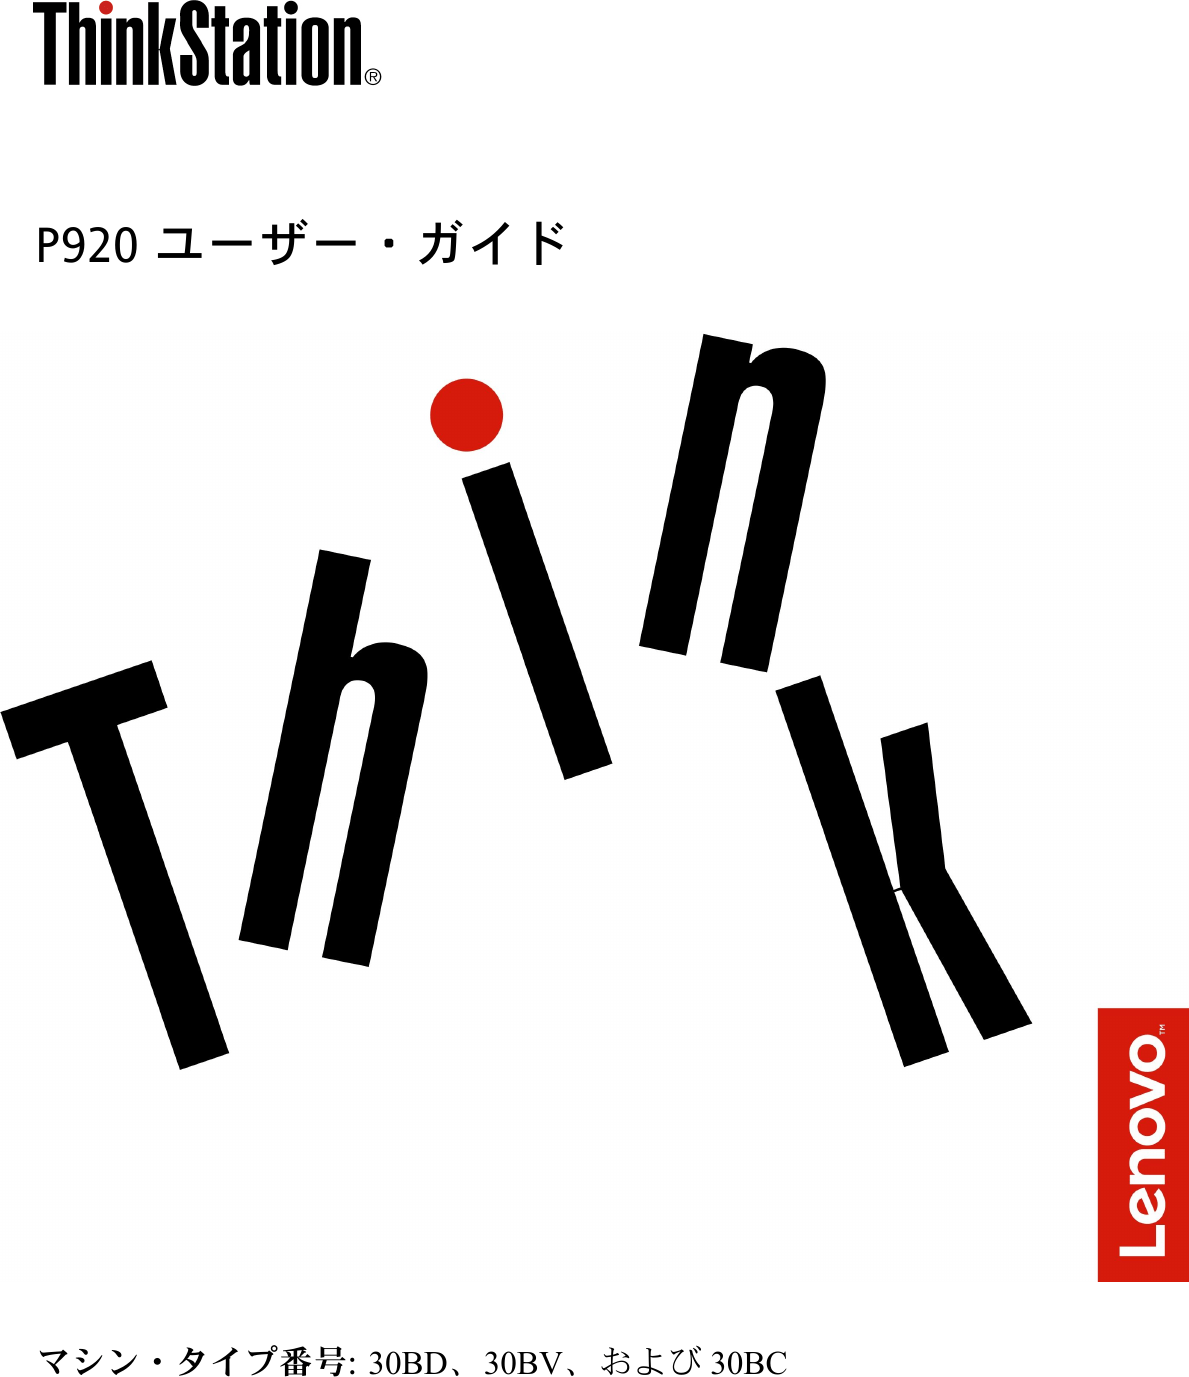 Lenovo P920 Ug Ja User Manual ユーザーガイド (pdf バージョン) Think